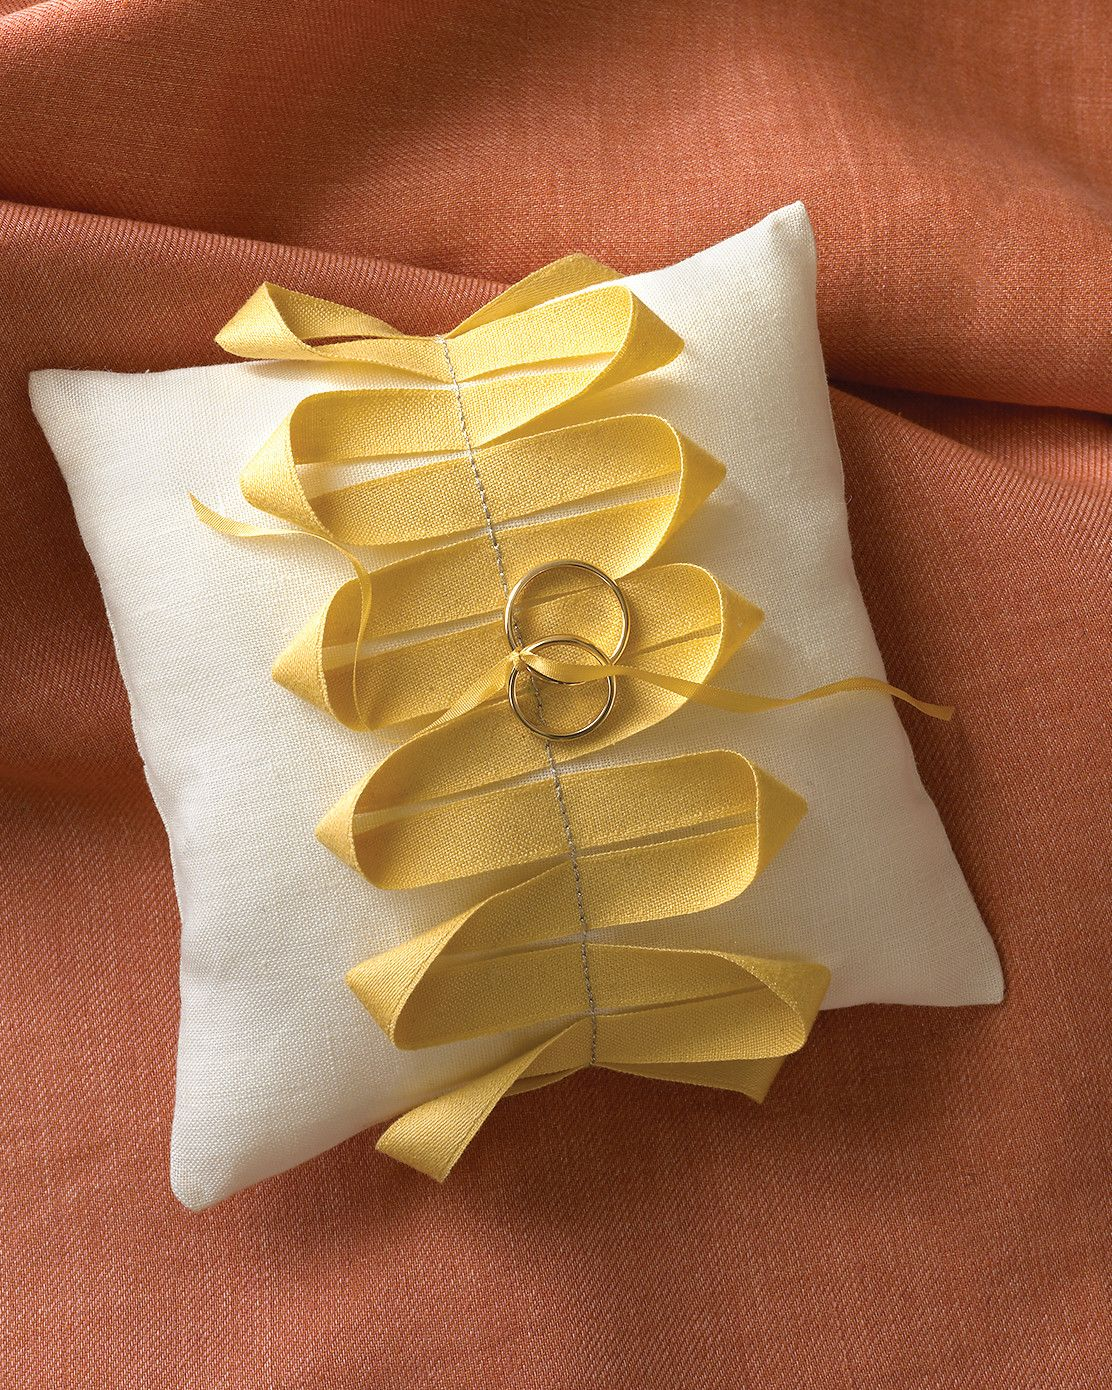 For the ring bearer consider this linen ring cushion decorated